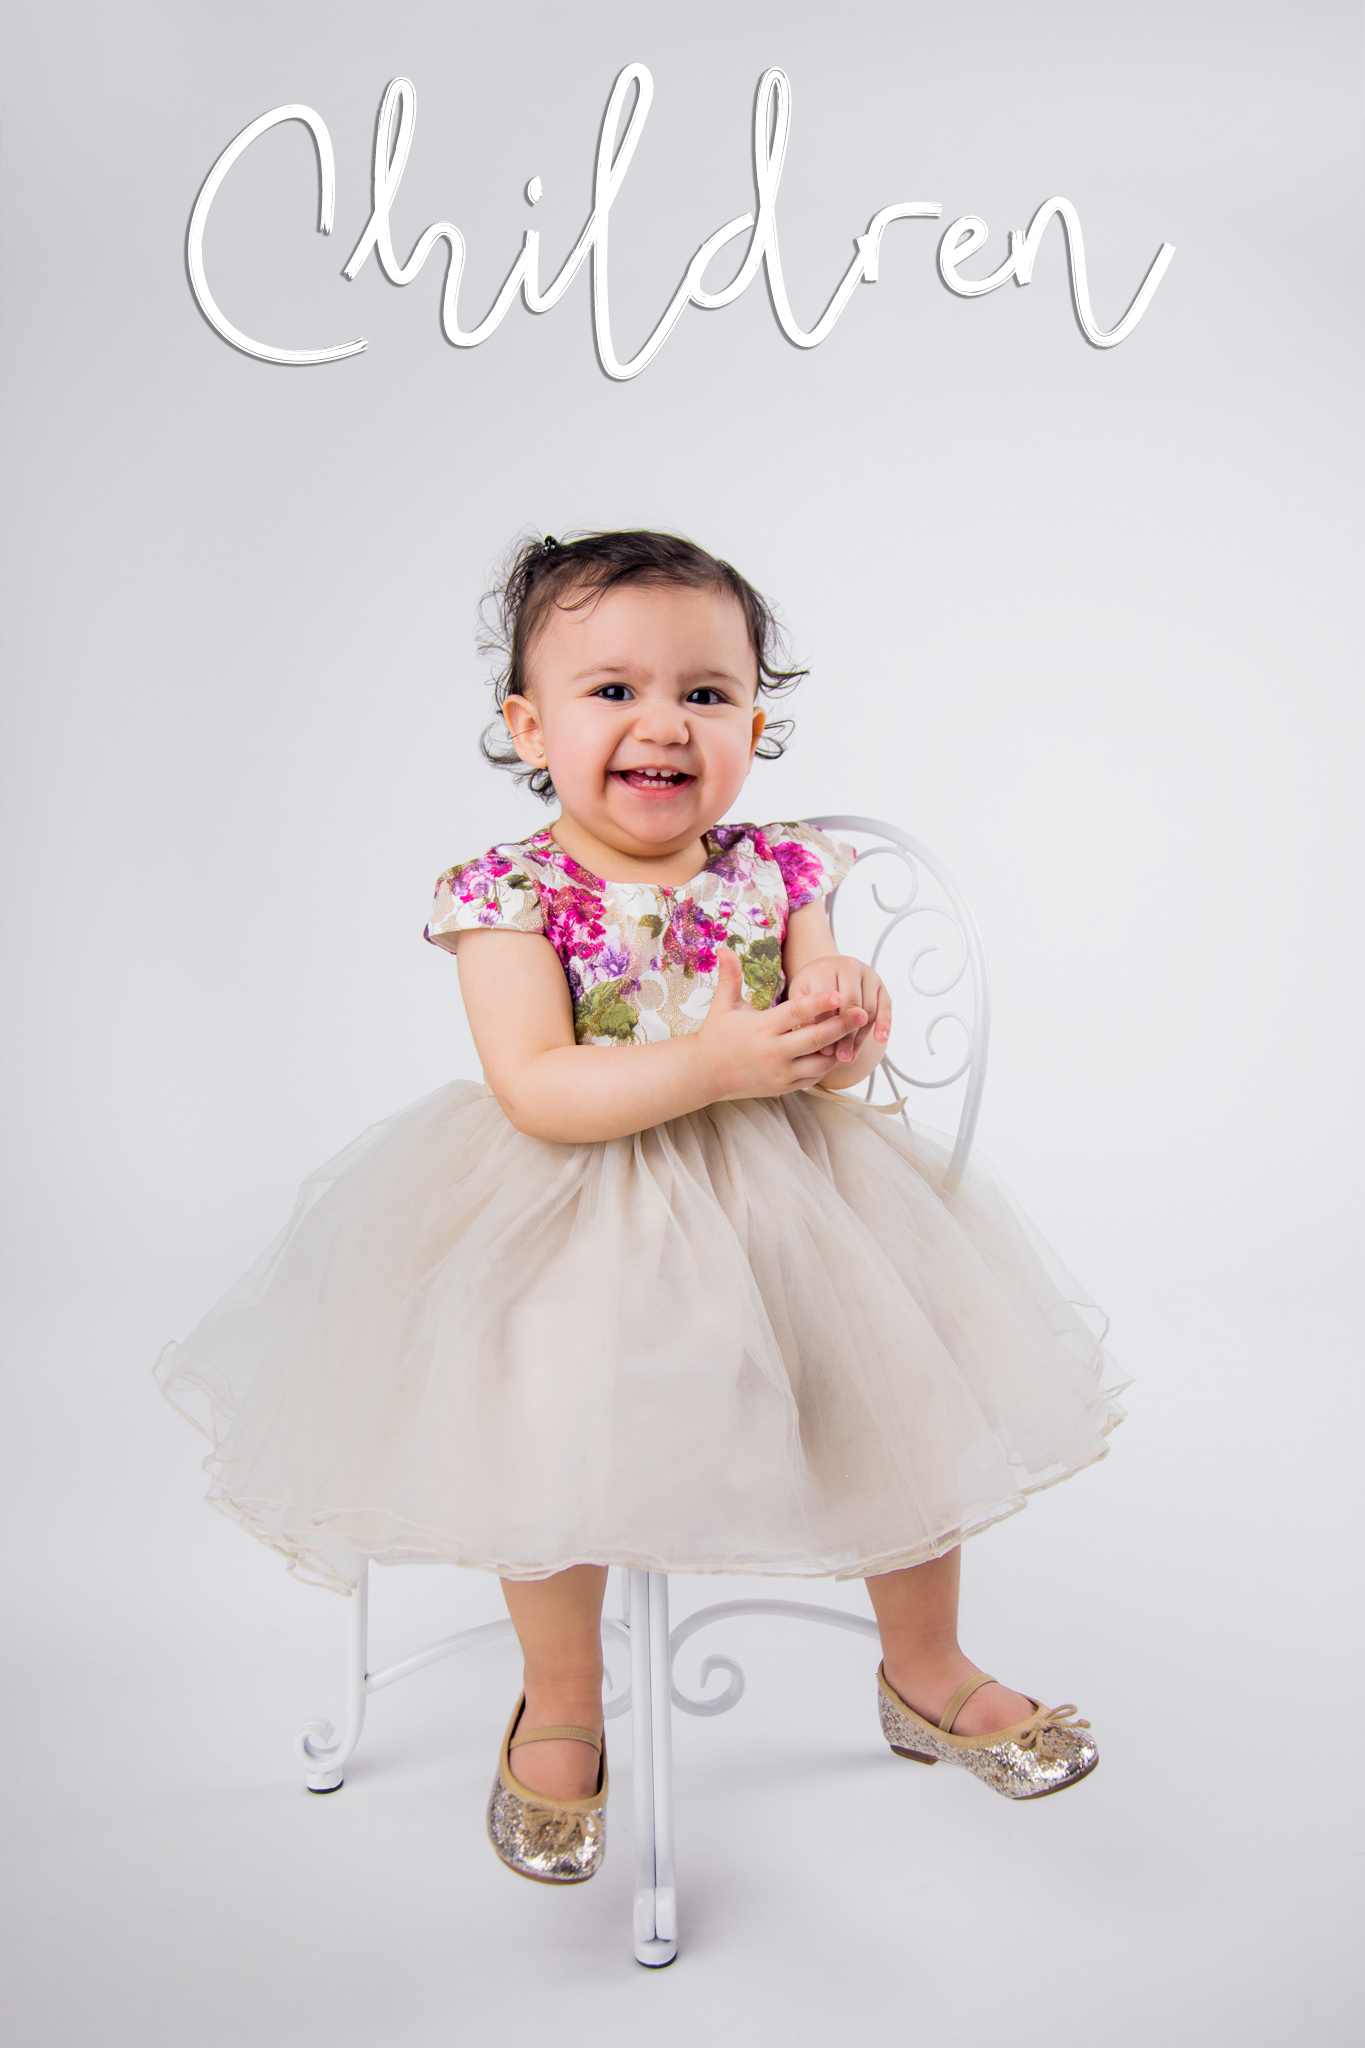 children photography, children photography services, dave zerbe photography, photography services, professional photography, professional photographers, newborn photography, newborn photography services